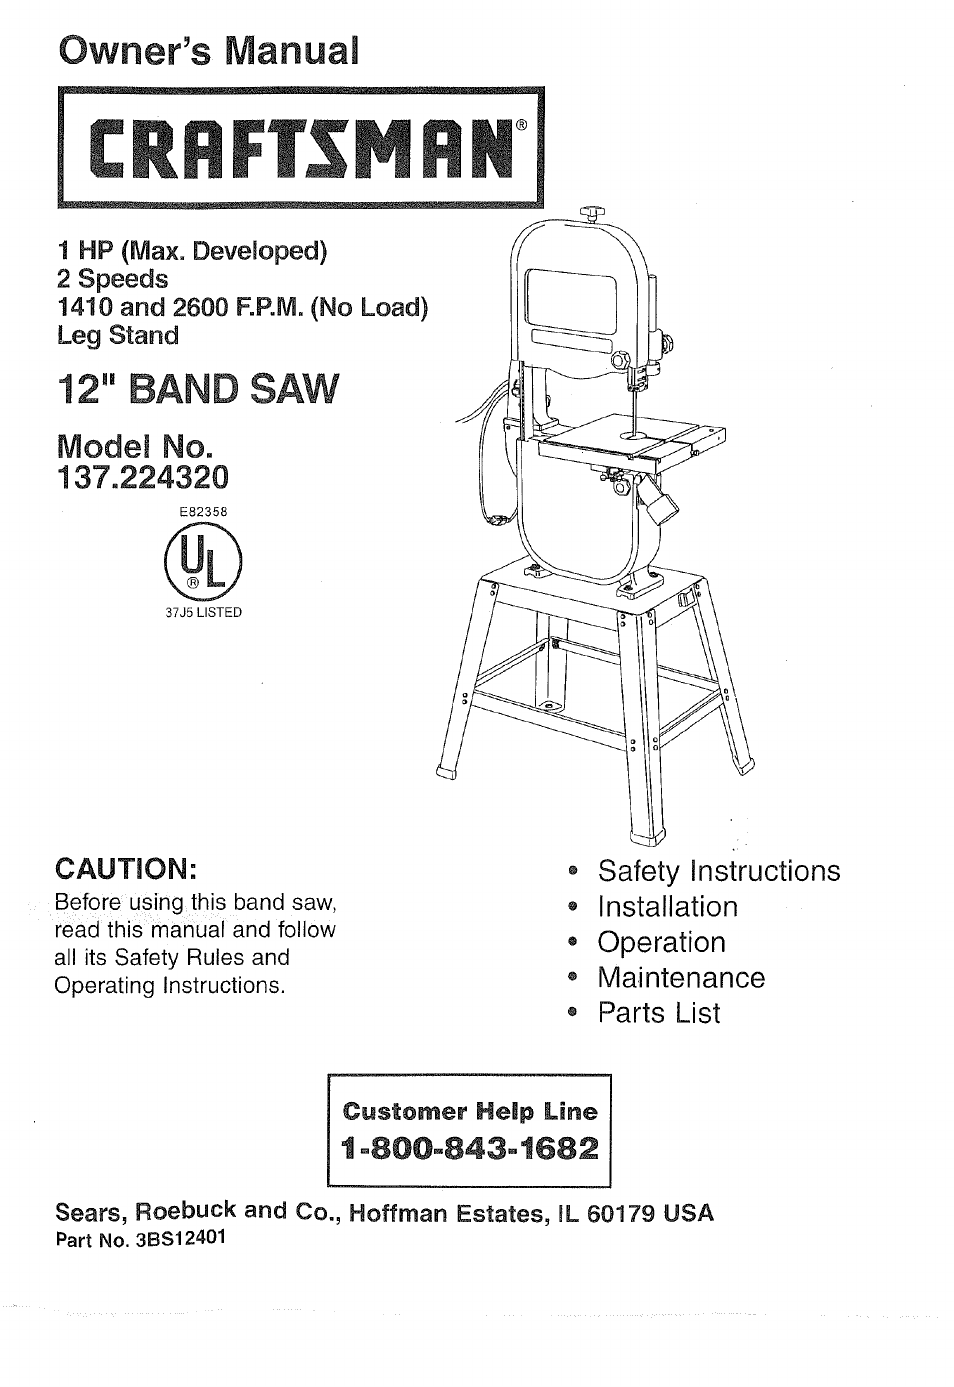 craftsman 137 224320 user manual 25 pages rh manualsdir com craftsman circular saw user manual craftsman table saw user manual